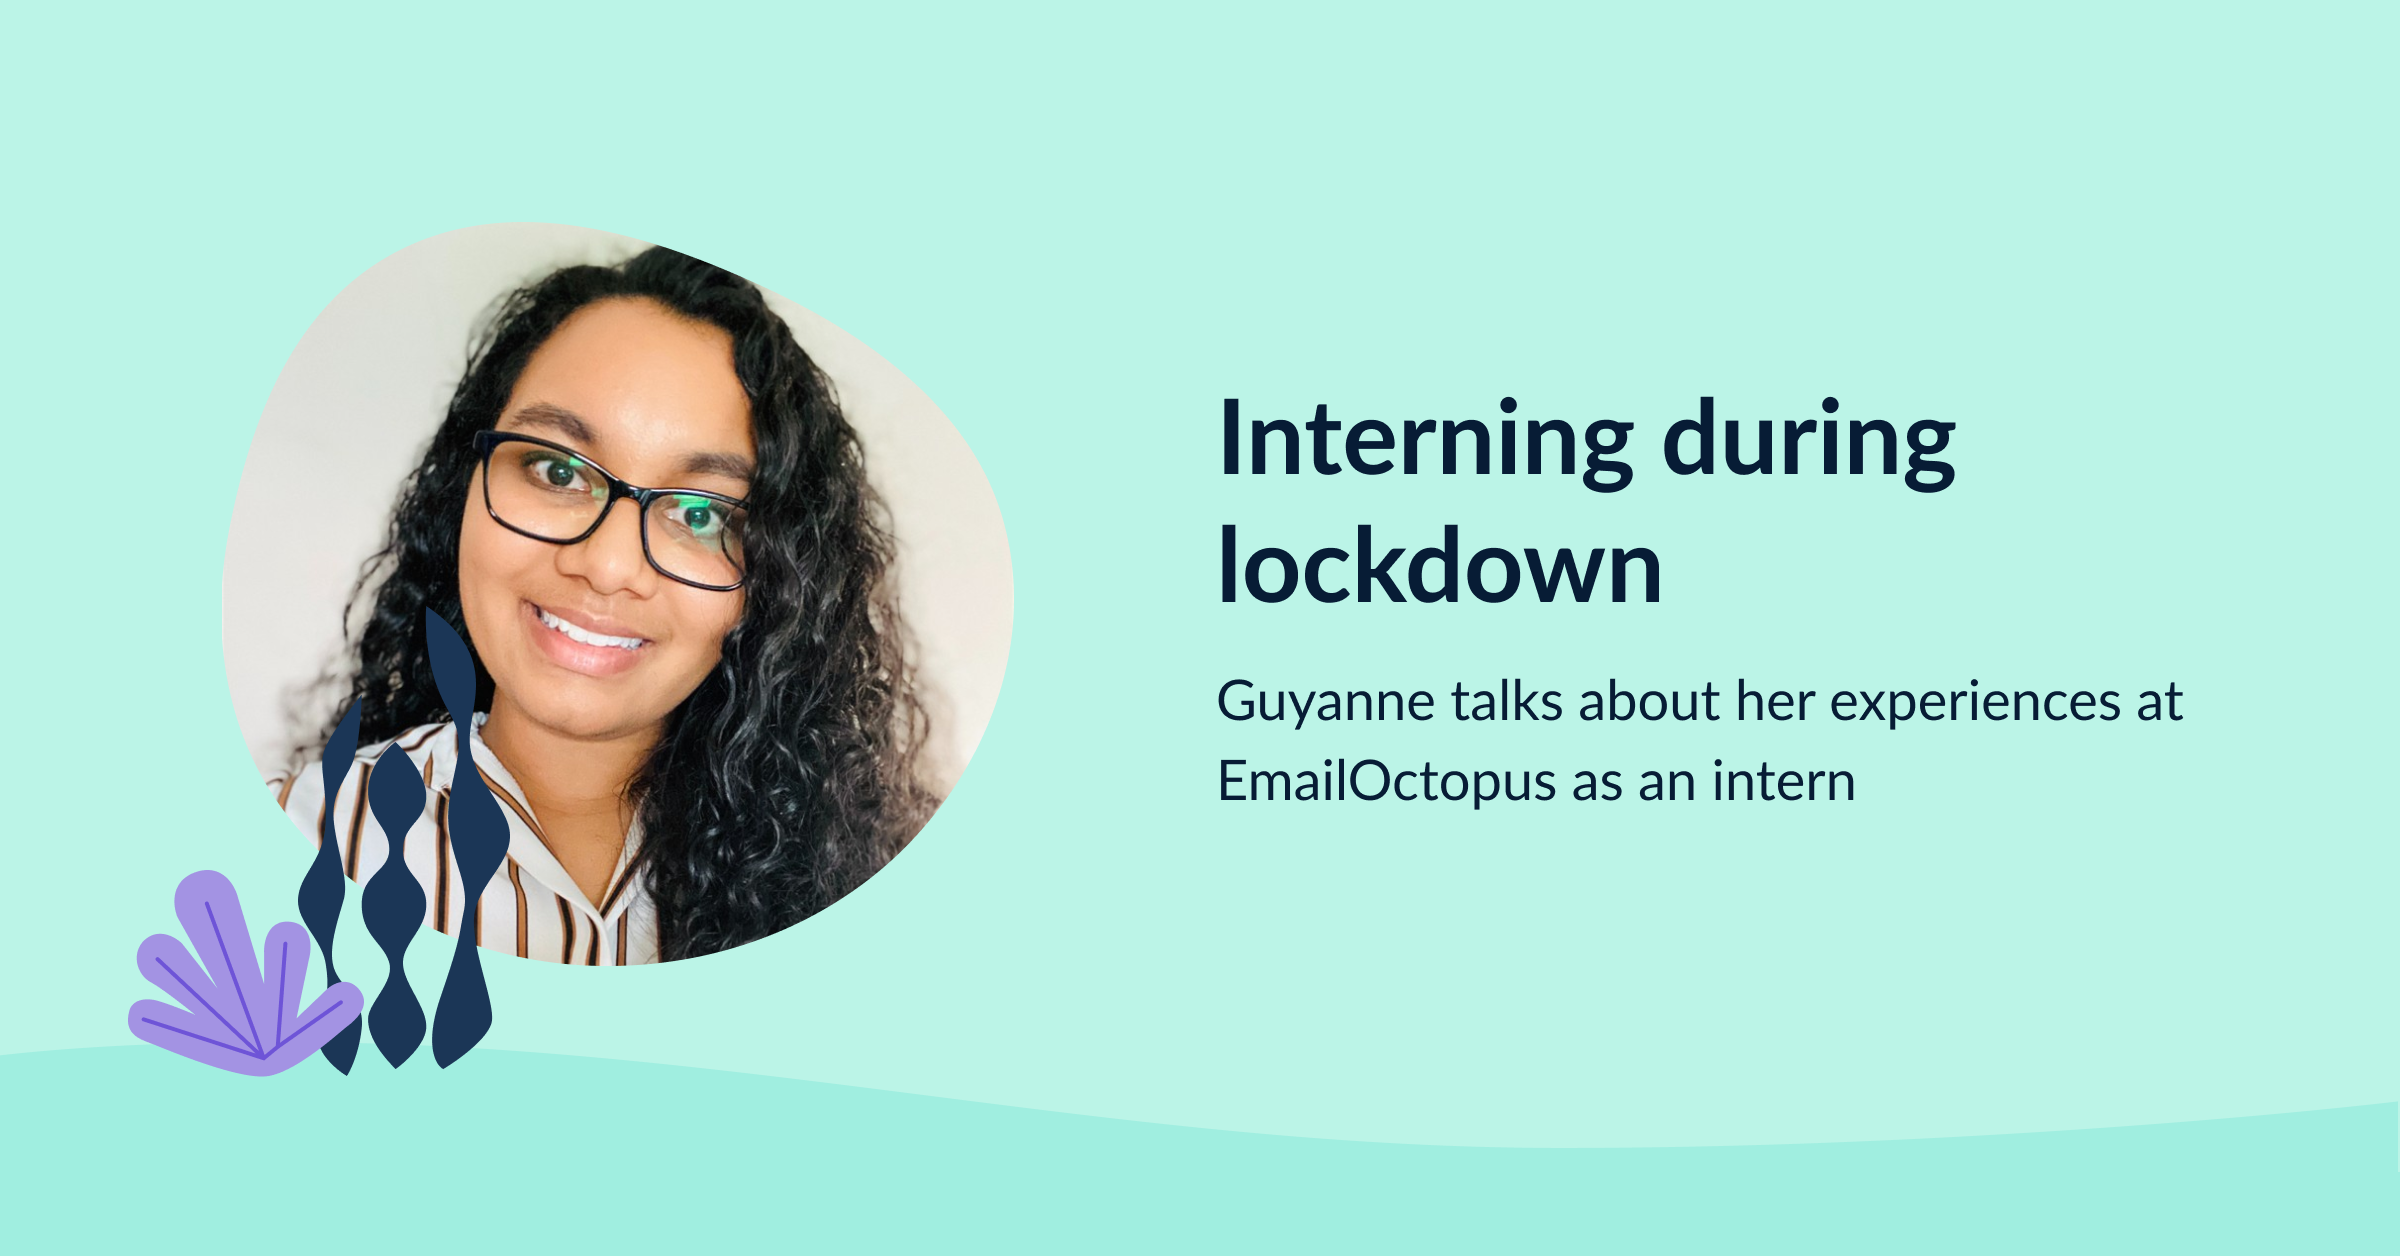 Interning at EmailOctopus during lockdown and tips for working remotely cover image